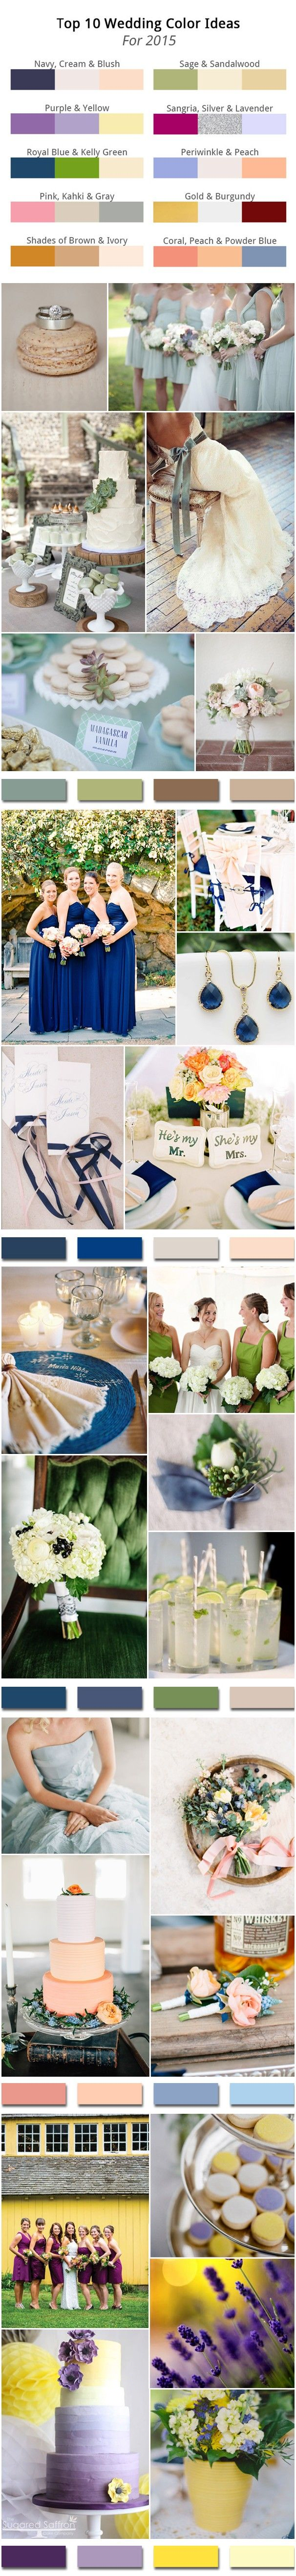 Top 10 Wedding Color Ideas for 2015 Trends #elegantweddinginvites #wedding colors